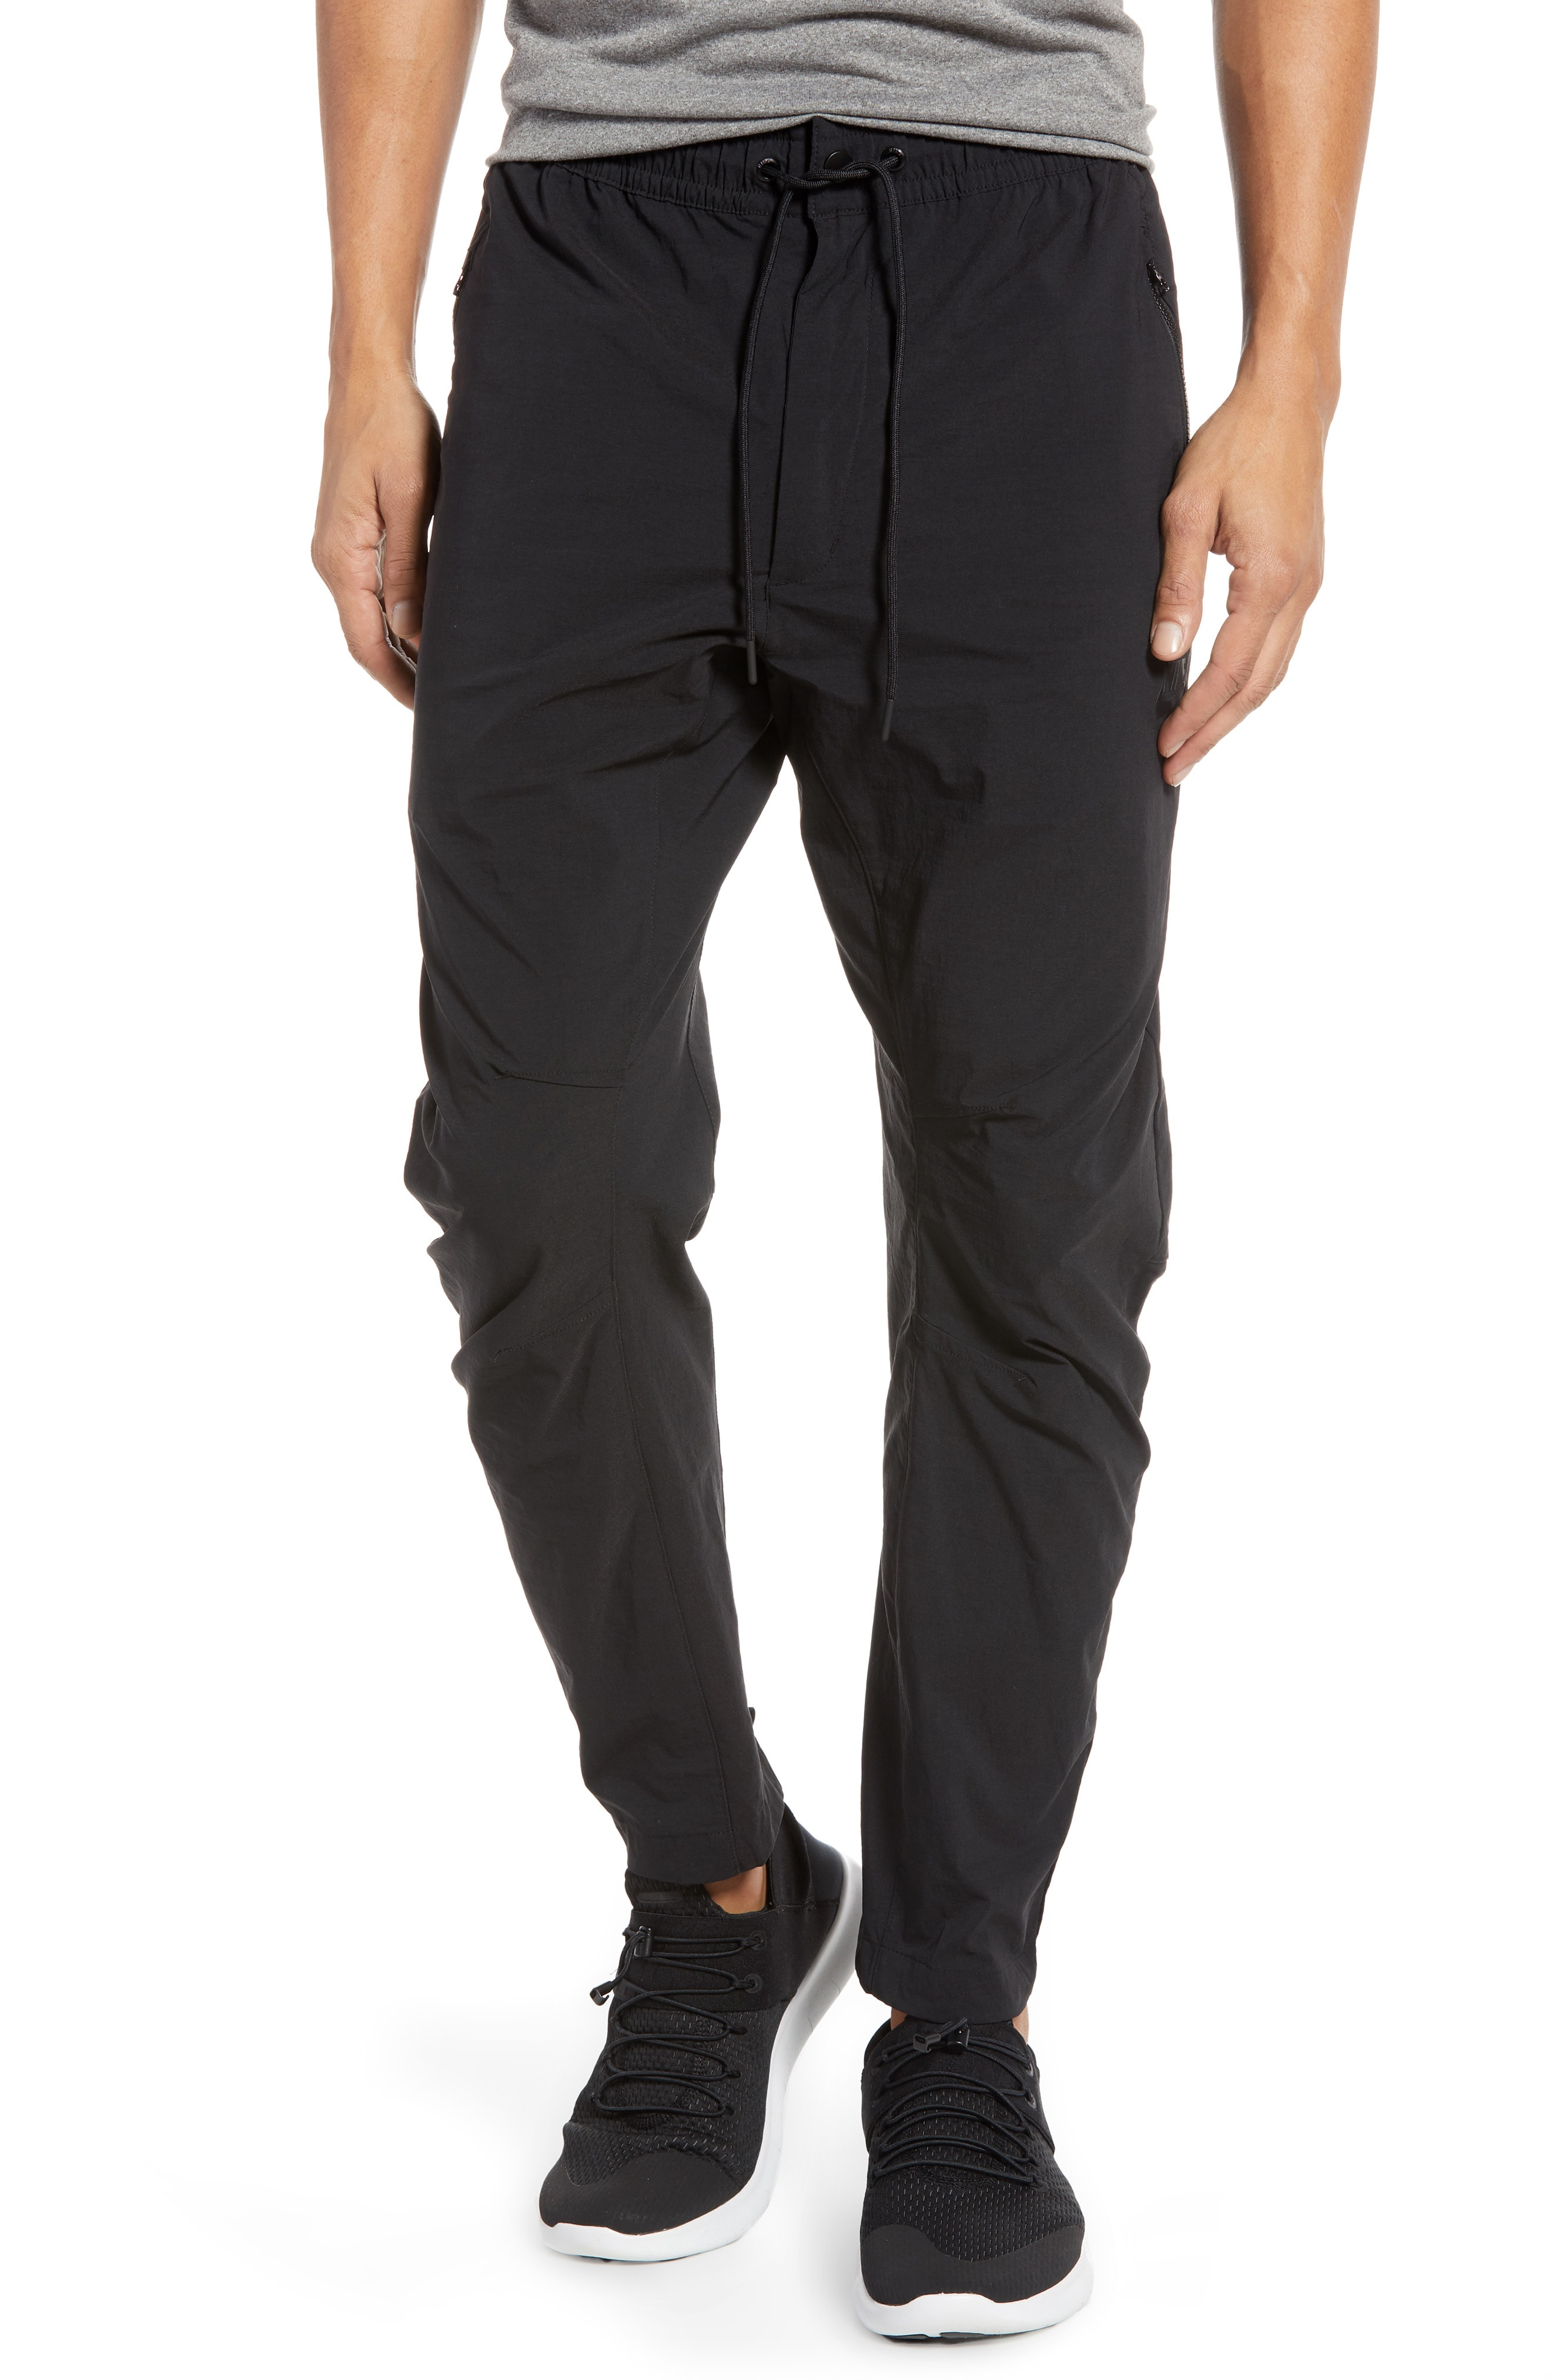 black stretch pants | Nordstrom